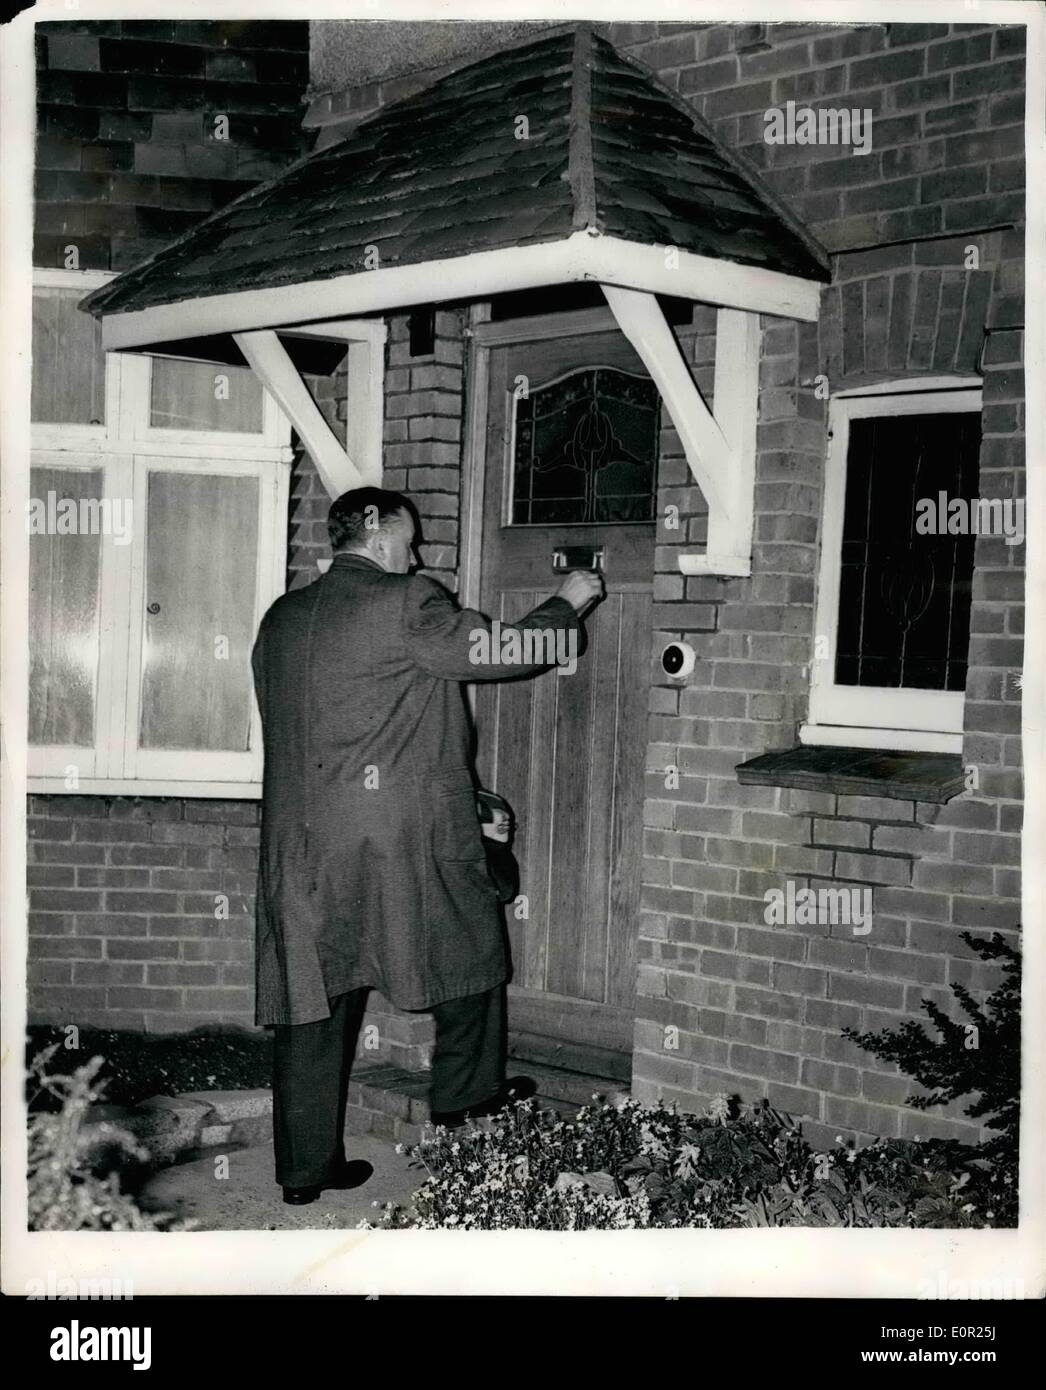 Oct. 10, 1957 - Brighton Police Chief Is Granted Bail But He Must Remain In His Home: Charles Ridge, suspended Chief Constable of Brighton, left a cell in Lowes jail yesterday to become a prisoner in his own home, He was bailed out by his daughter, Mrs. Betty Whiffen, 31-year-old children's officer. A few hours earlier an application for Mr. Ridge's release on 500 bail was granted by Mr. Justine Diplock, sitting in the Chambers in the High Court. The judge made three conditions; (1) Mr. Ridge must go straight home with his solicitor, Mr - Stock Image